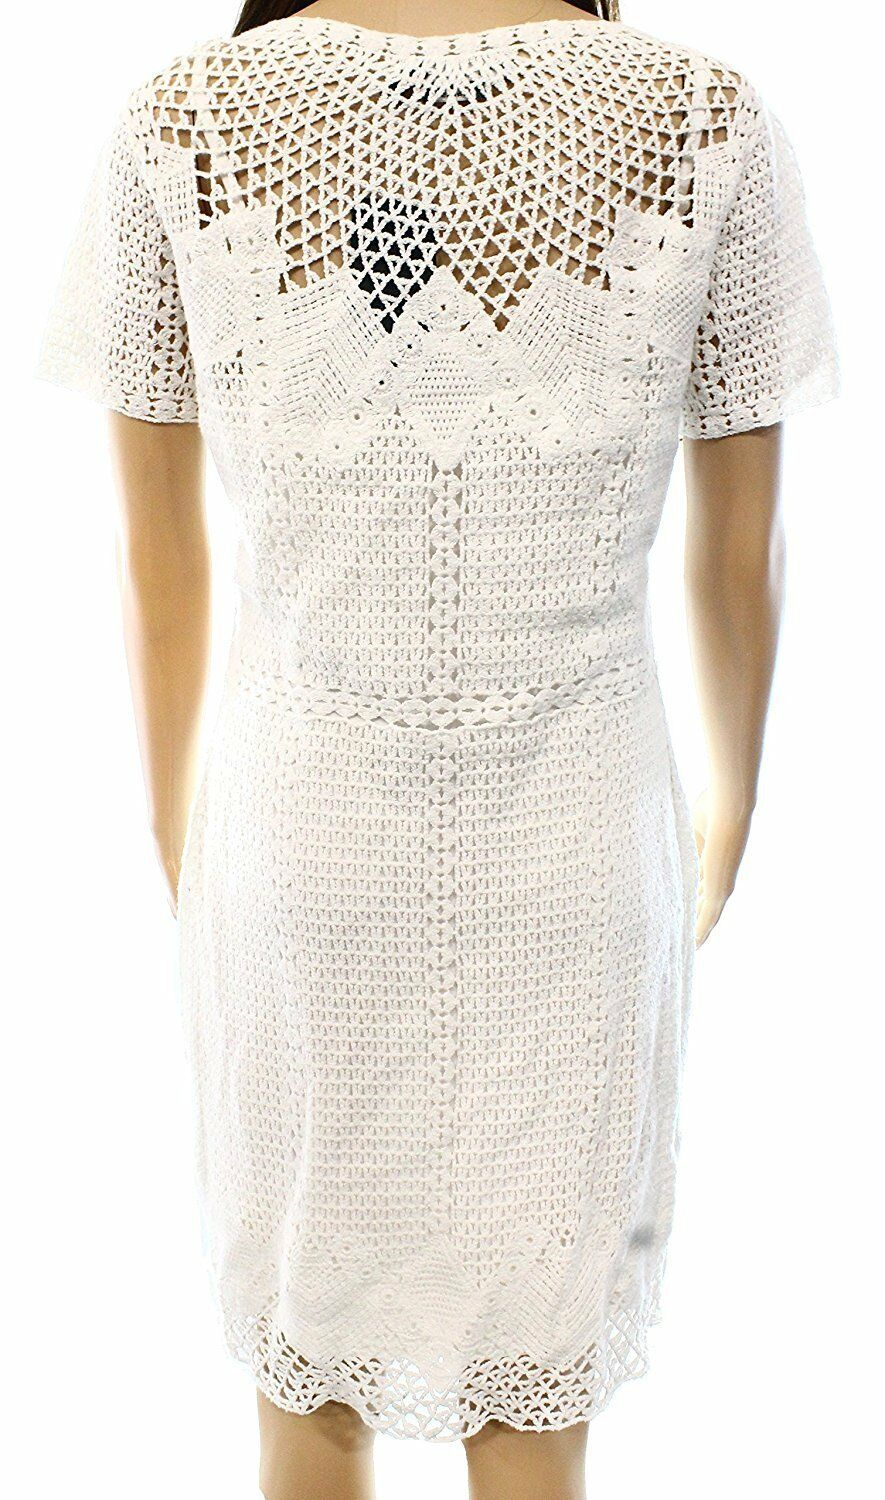 2302 LRL Ralph Lauren Womens White Crochet Short Sleeves Sheath Dress Sz XS $179